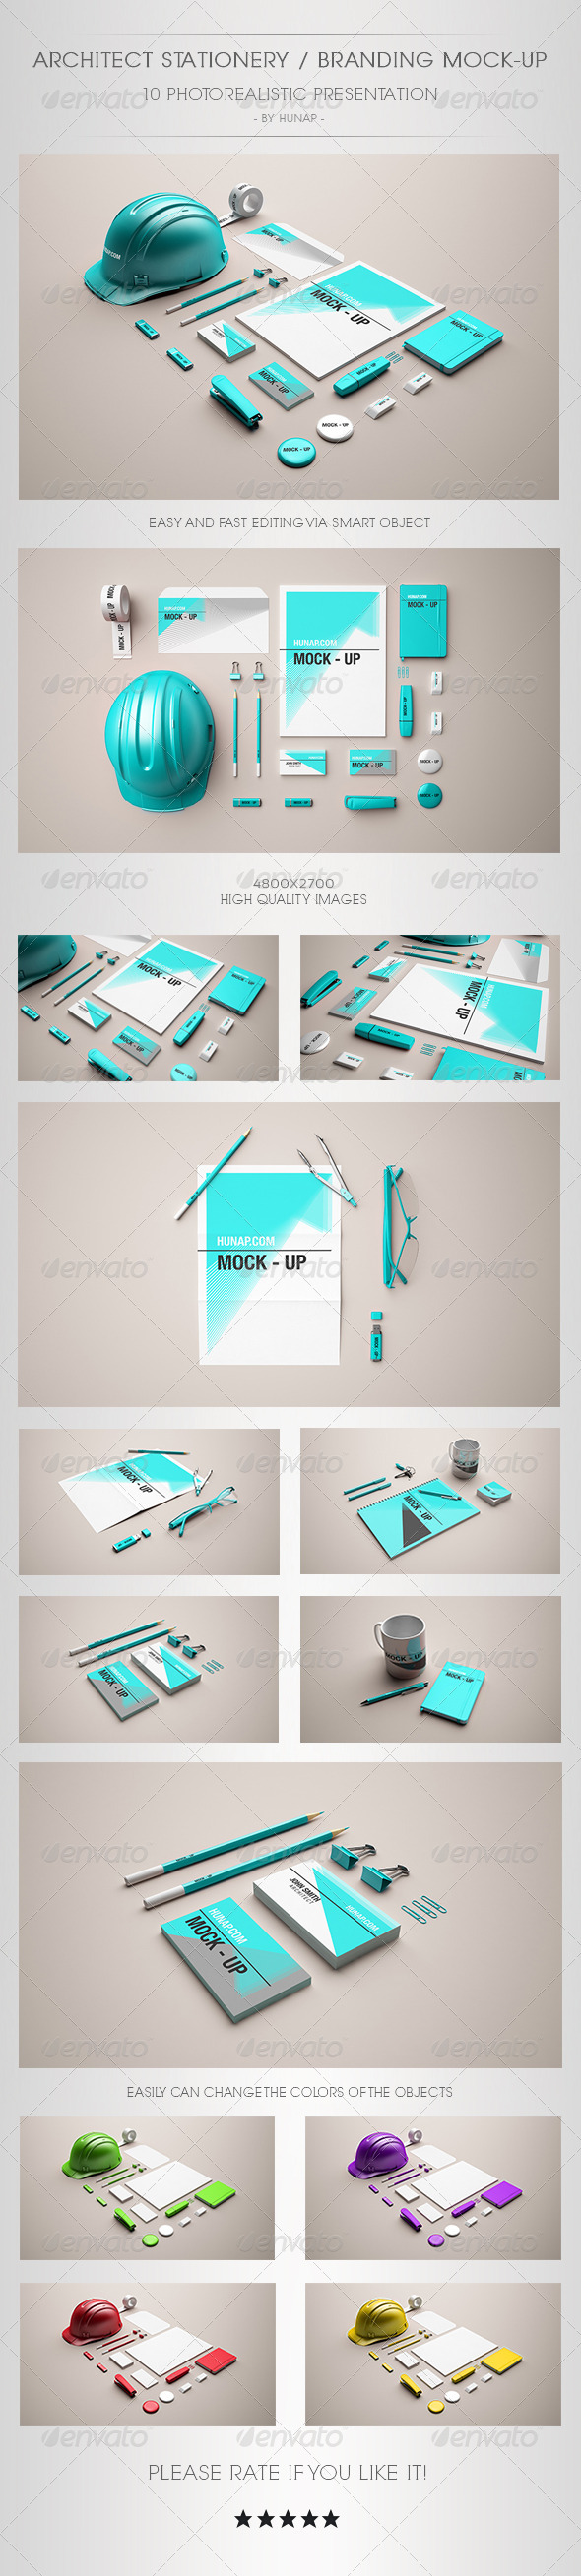 Architect Stationery Mock-Up - Stationery Print